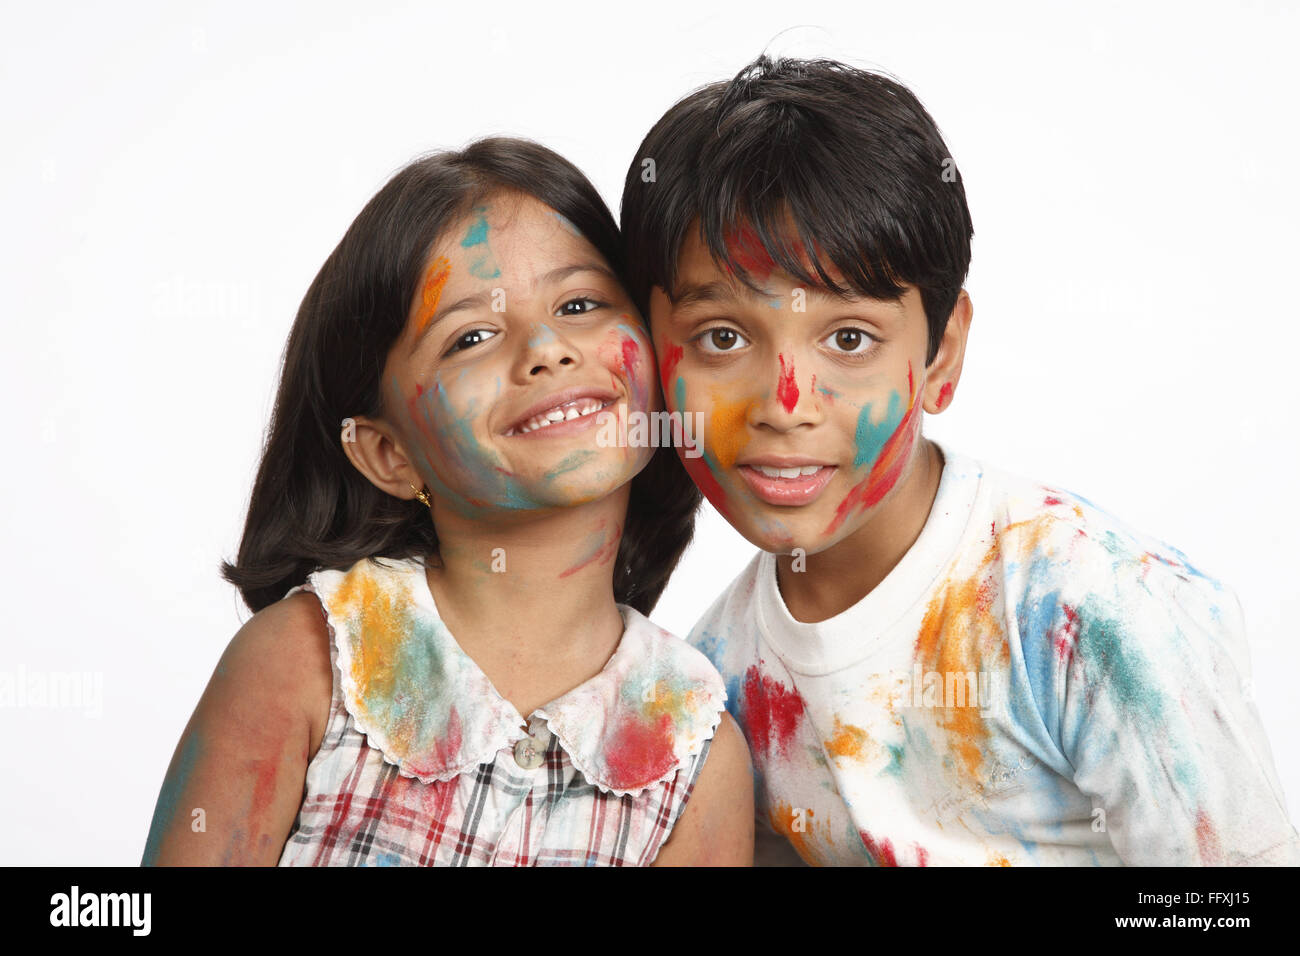 Ten and eight year old boy and girl posing with heads touched to each other on Holi festival MR# 703U,703V - Stock Image